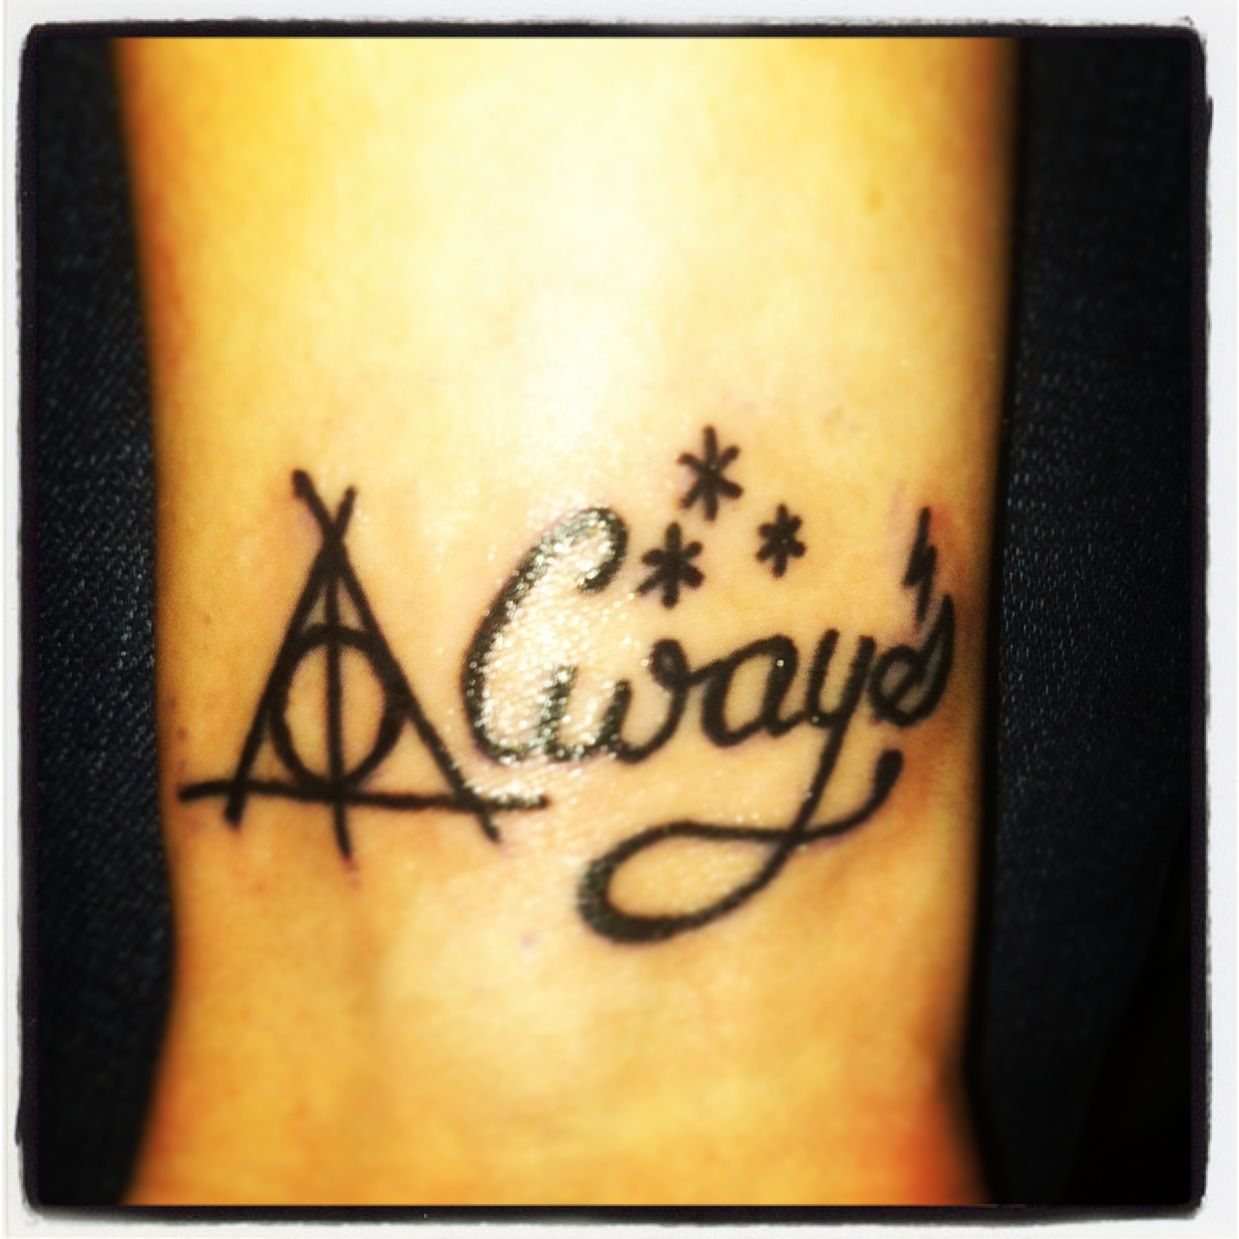 Always Harry Potter And The Deathly Hallows Wrist Tattoo Gotta